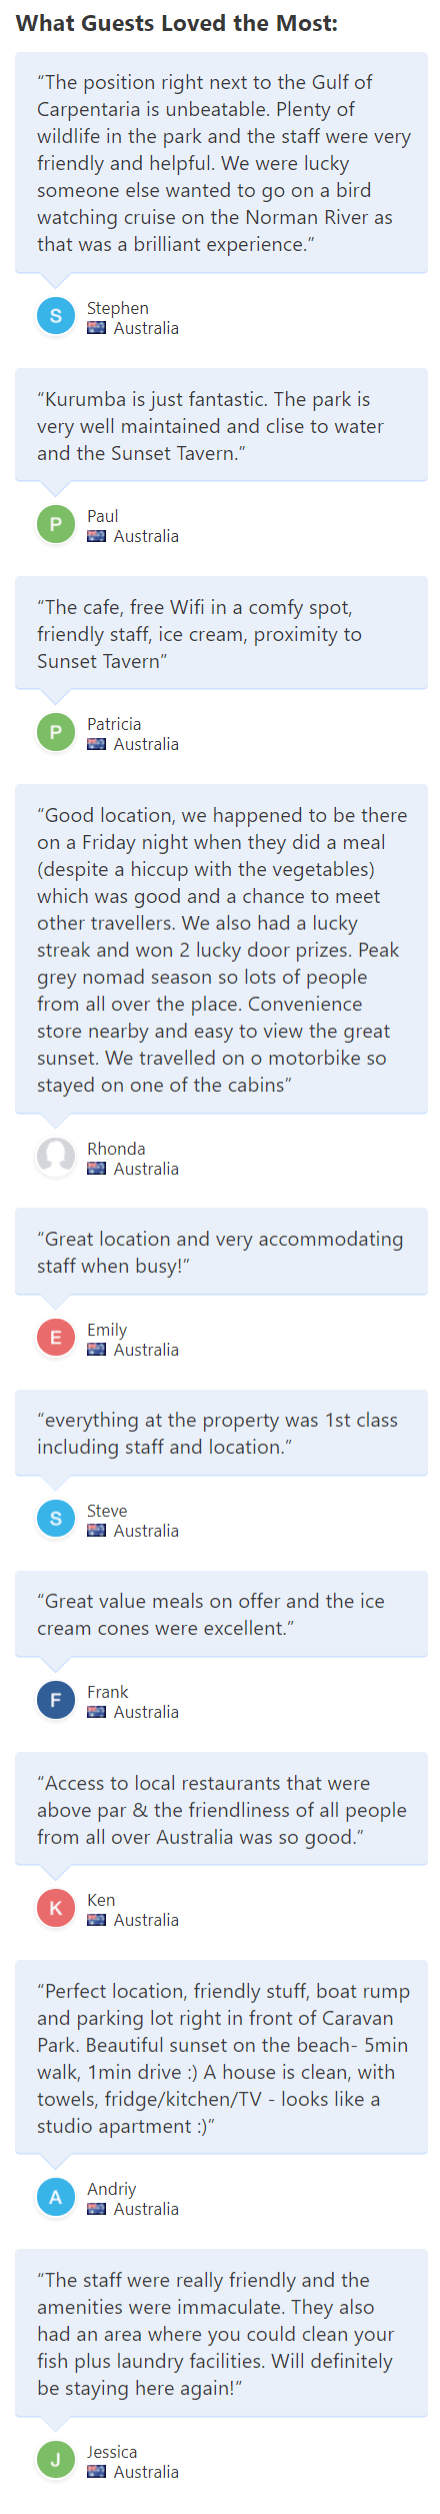 Karumba Point Sunset Caravan Park Testimonials Booking.com